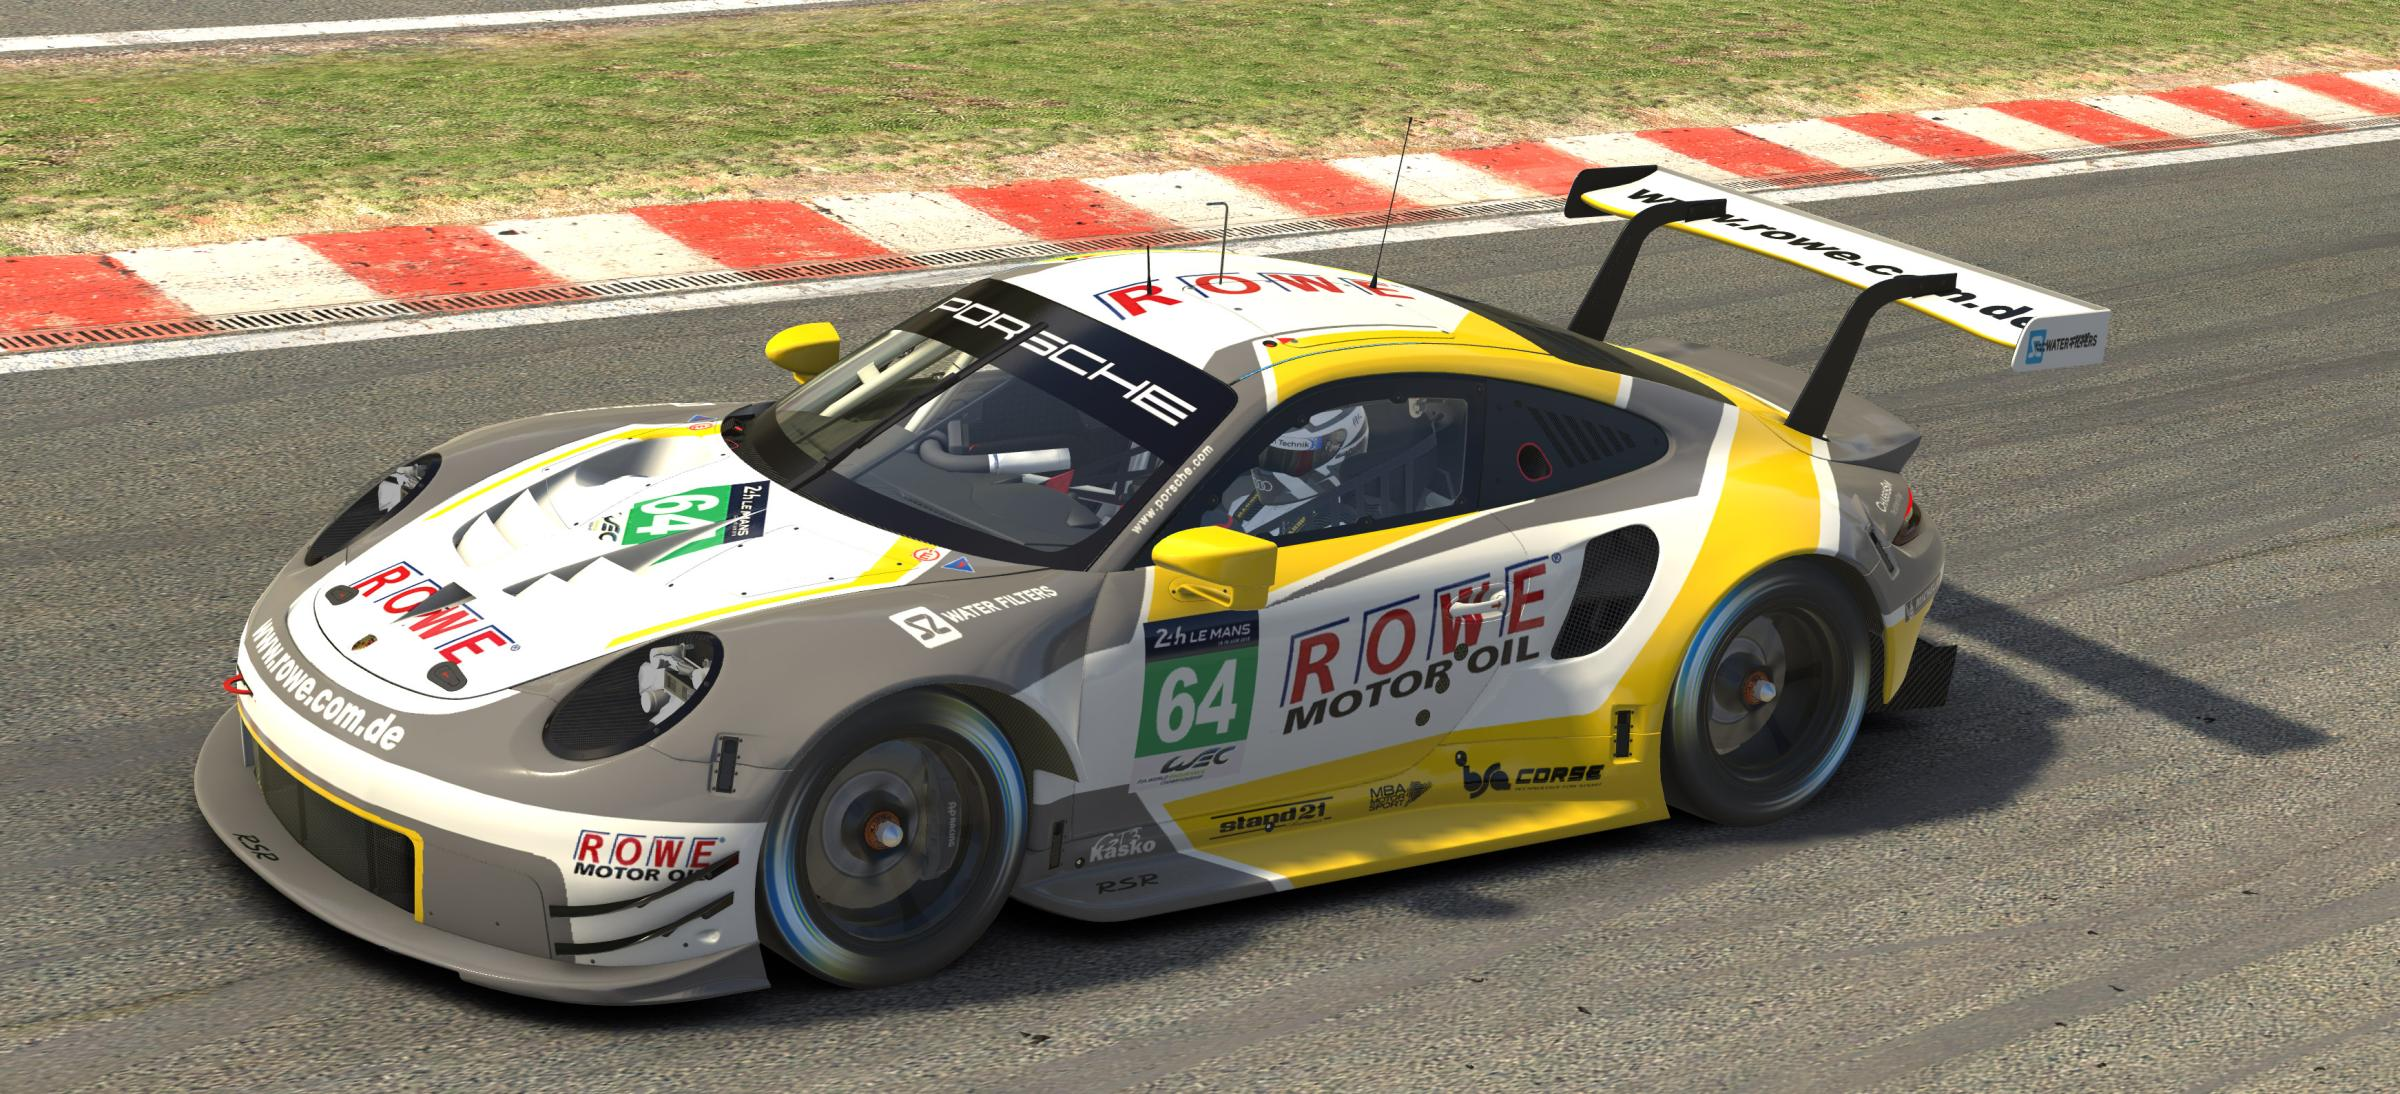 Rowe Racing 24h Spa 2019 By Marcel Stemmer Trading Paints